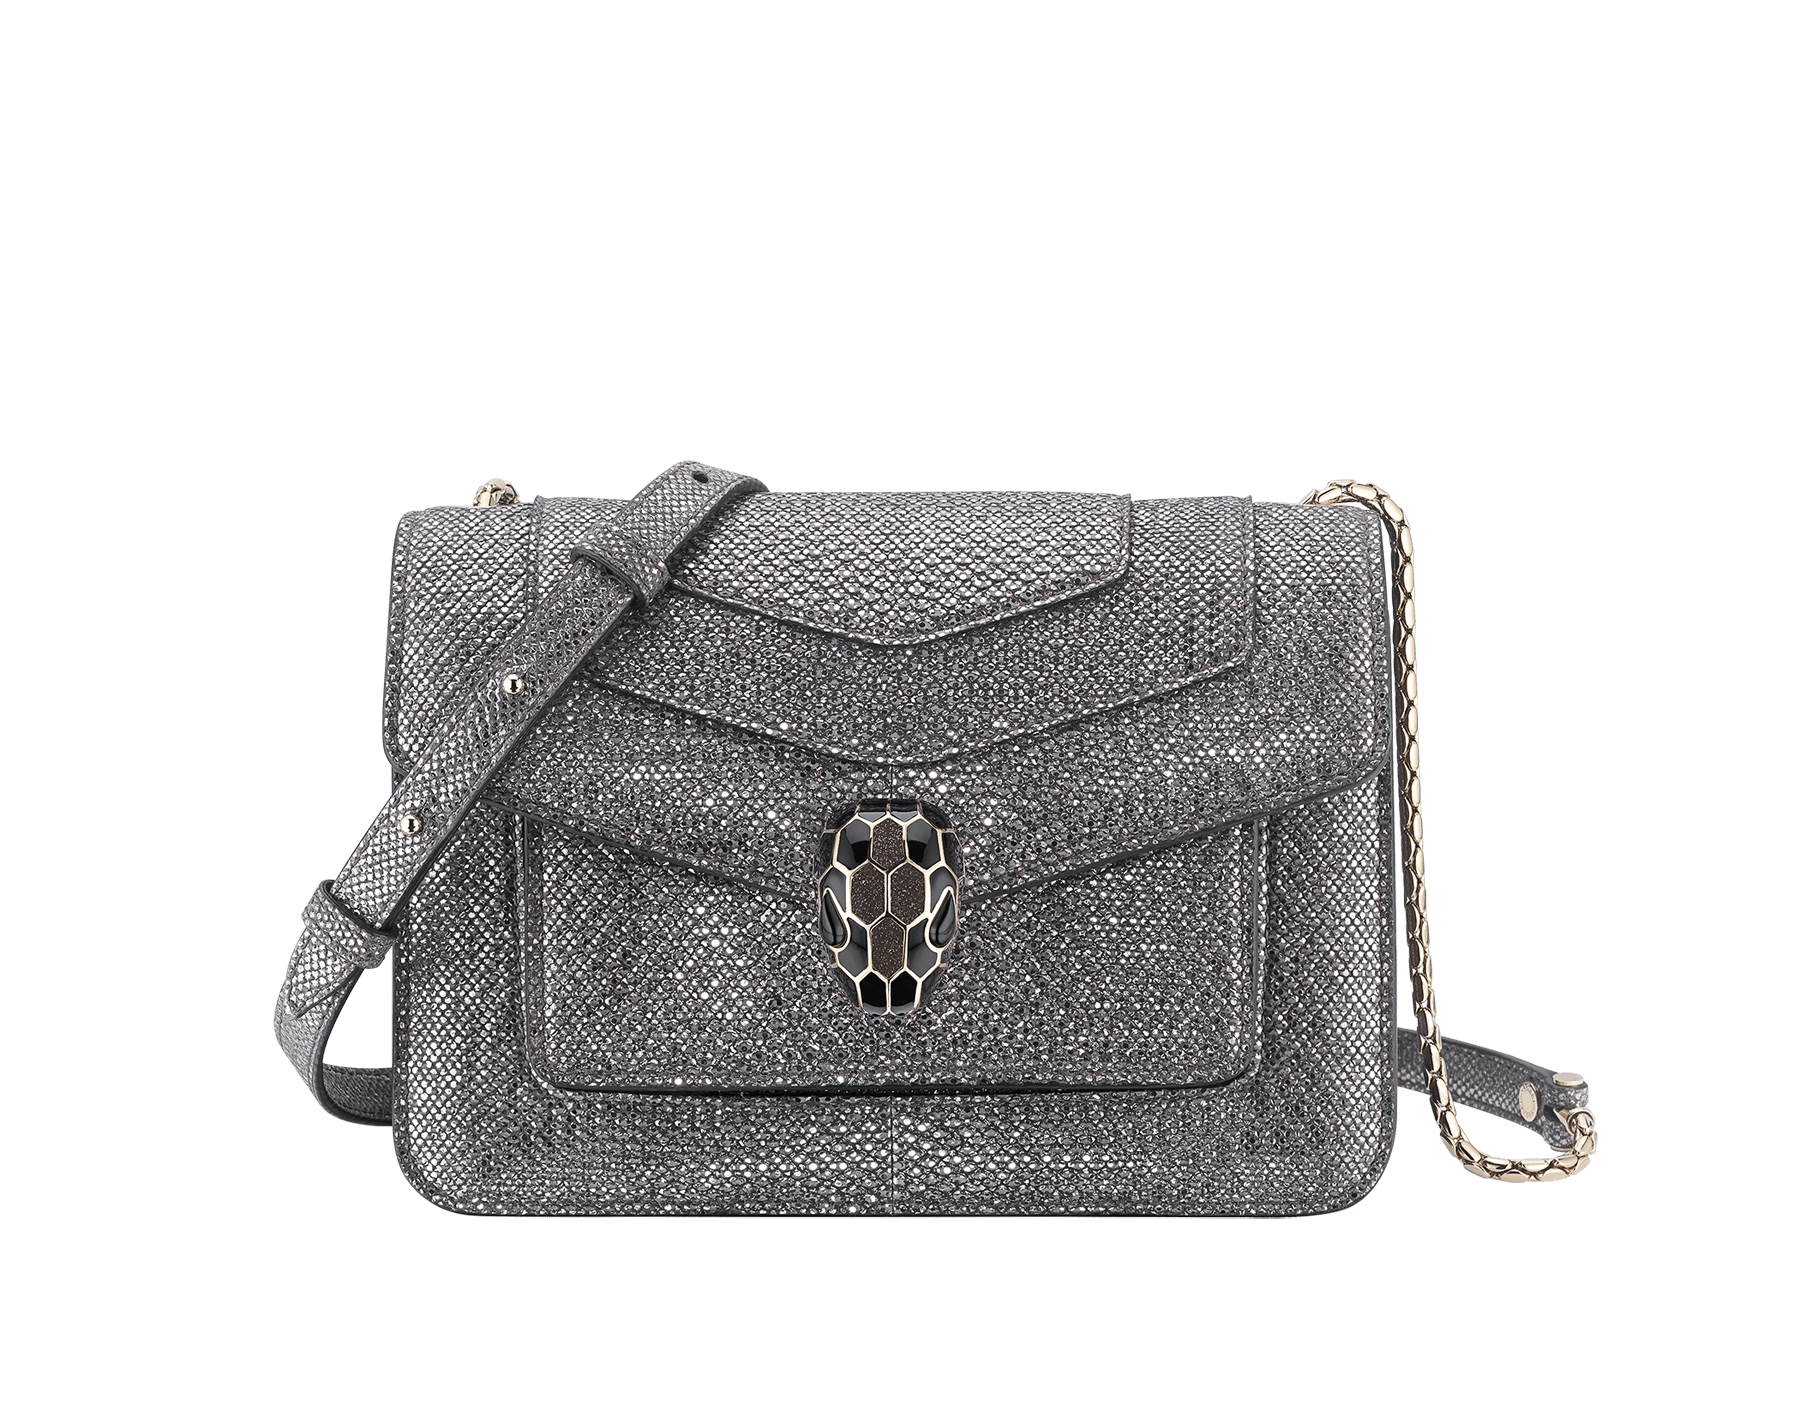 """Serpenti Forever"" crossbody bag in charcoal diamond metallic karung skin. Iconic snakehead closure in light gold plated brass enriched with black and glitter hawk's eye enamel and black onyx eyes. 289900 image 1"